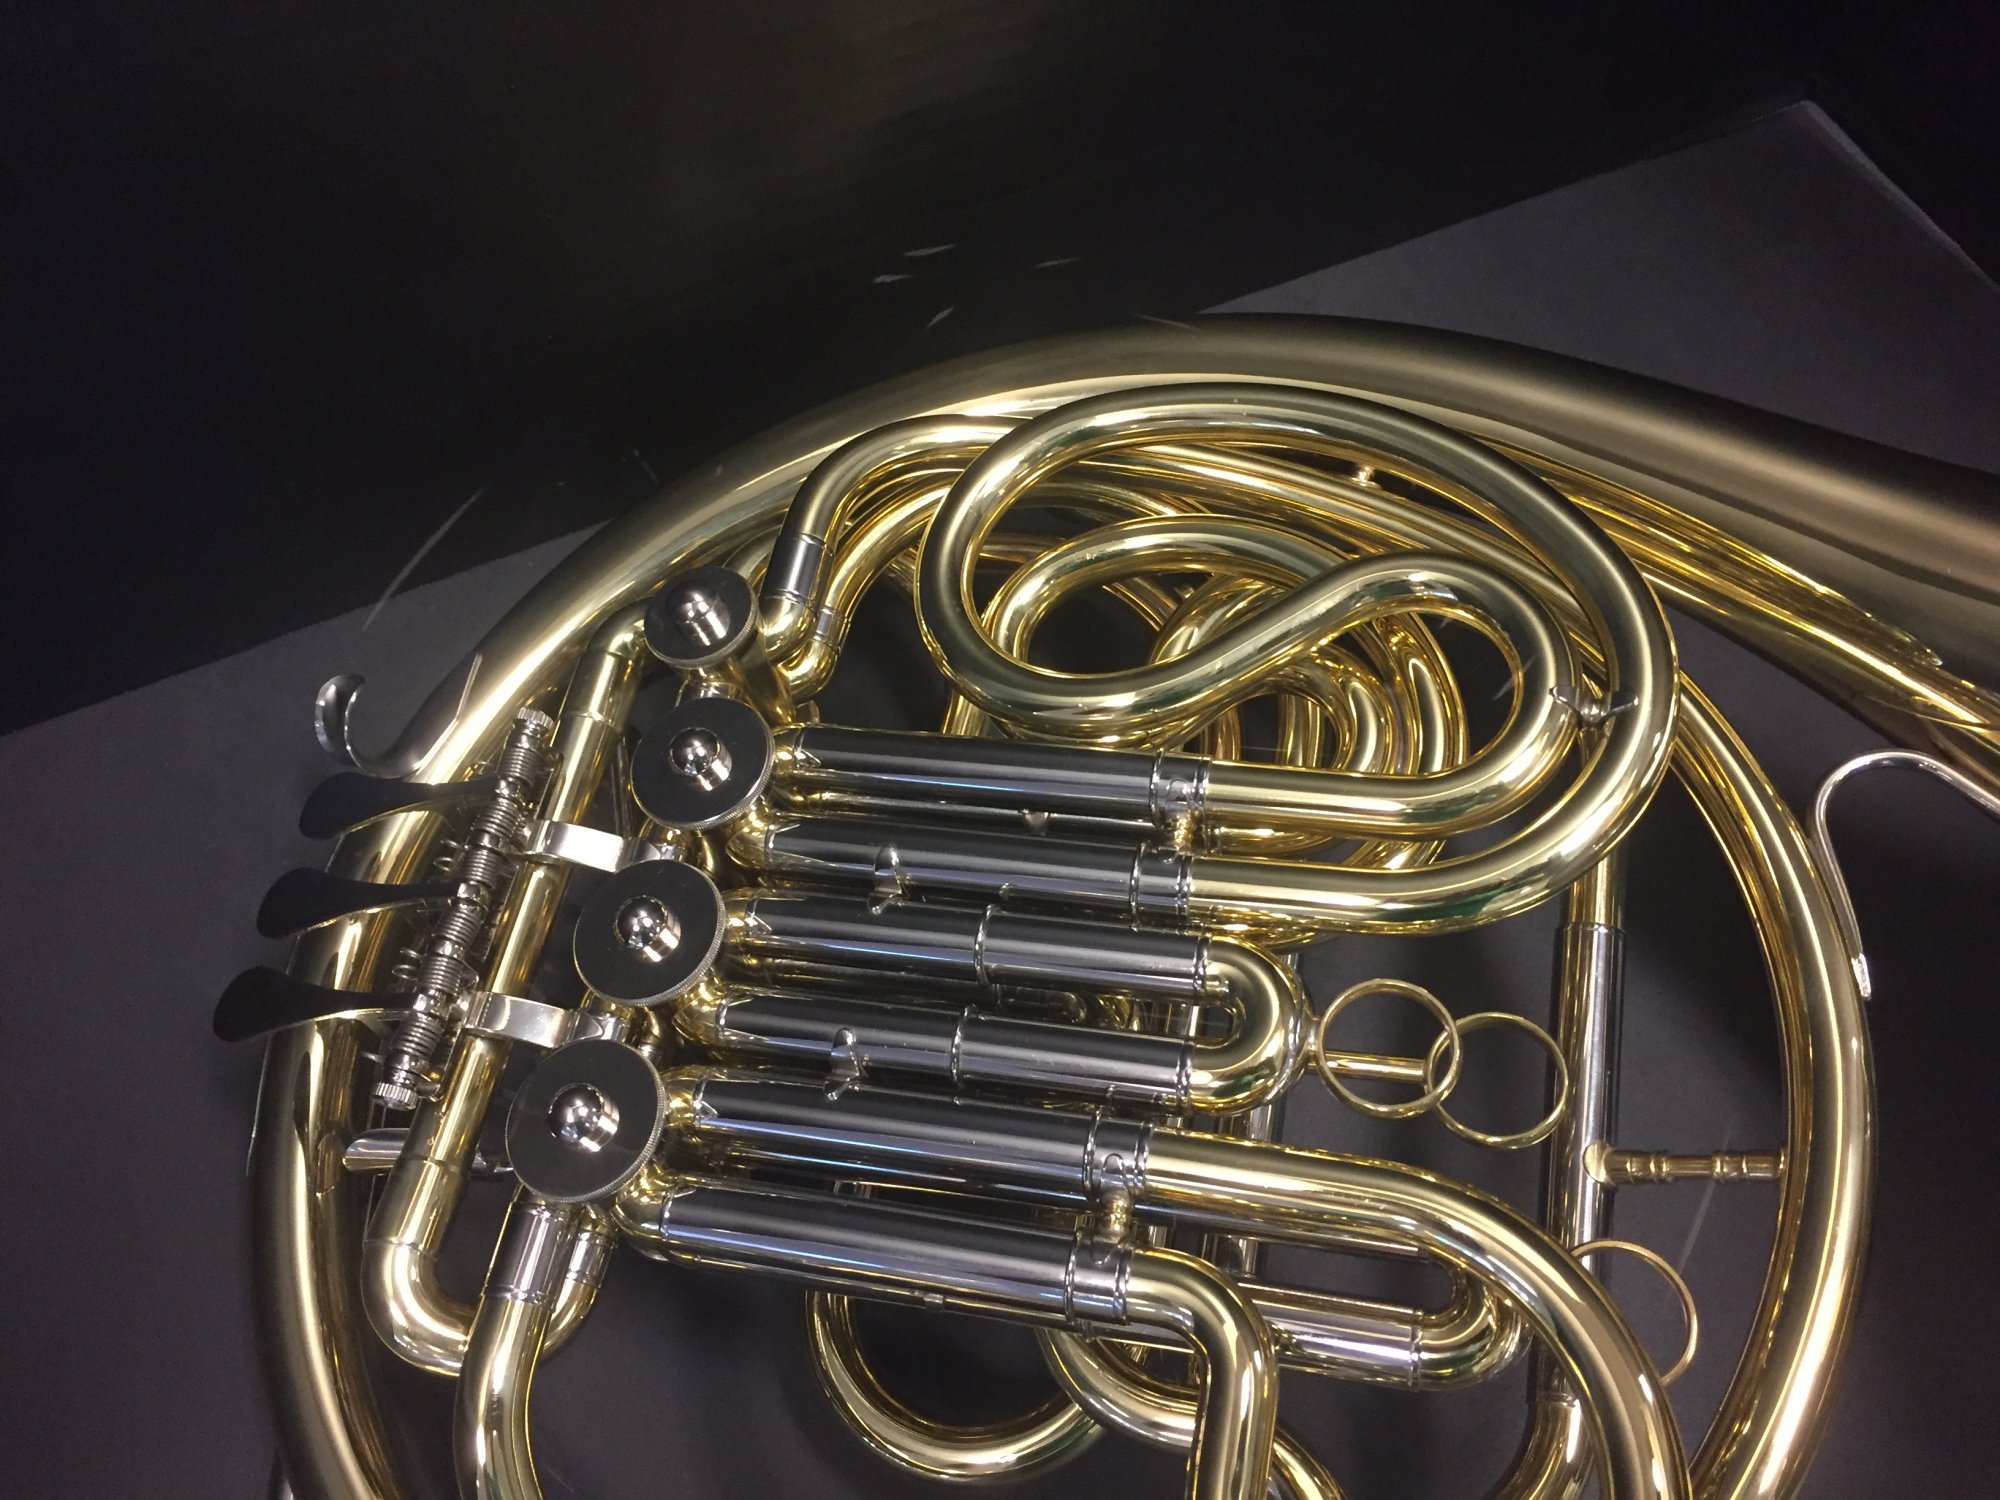 Jupiter JHR 852 L Double French Horn